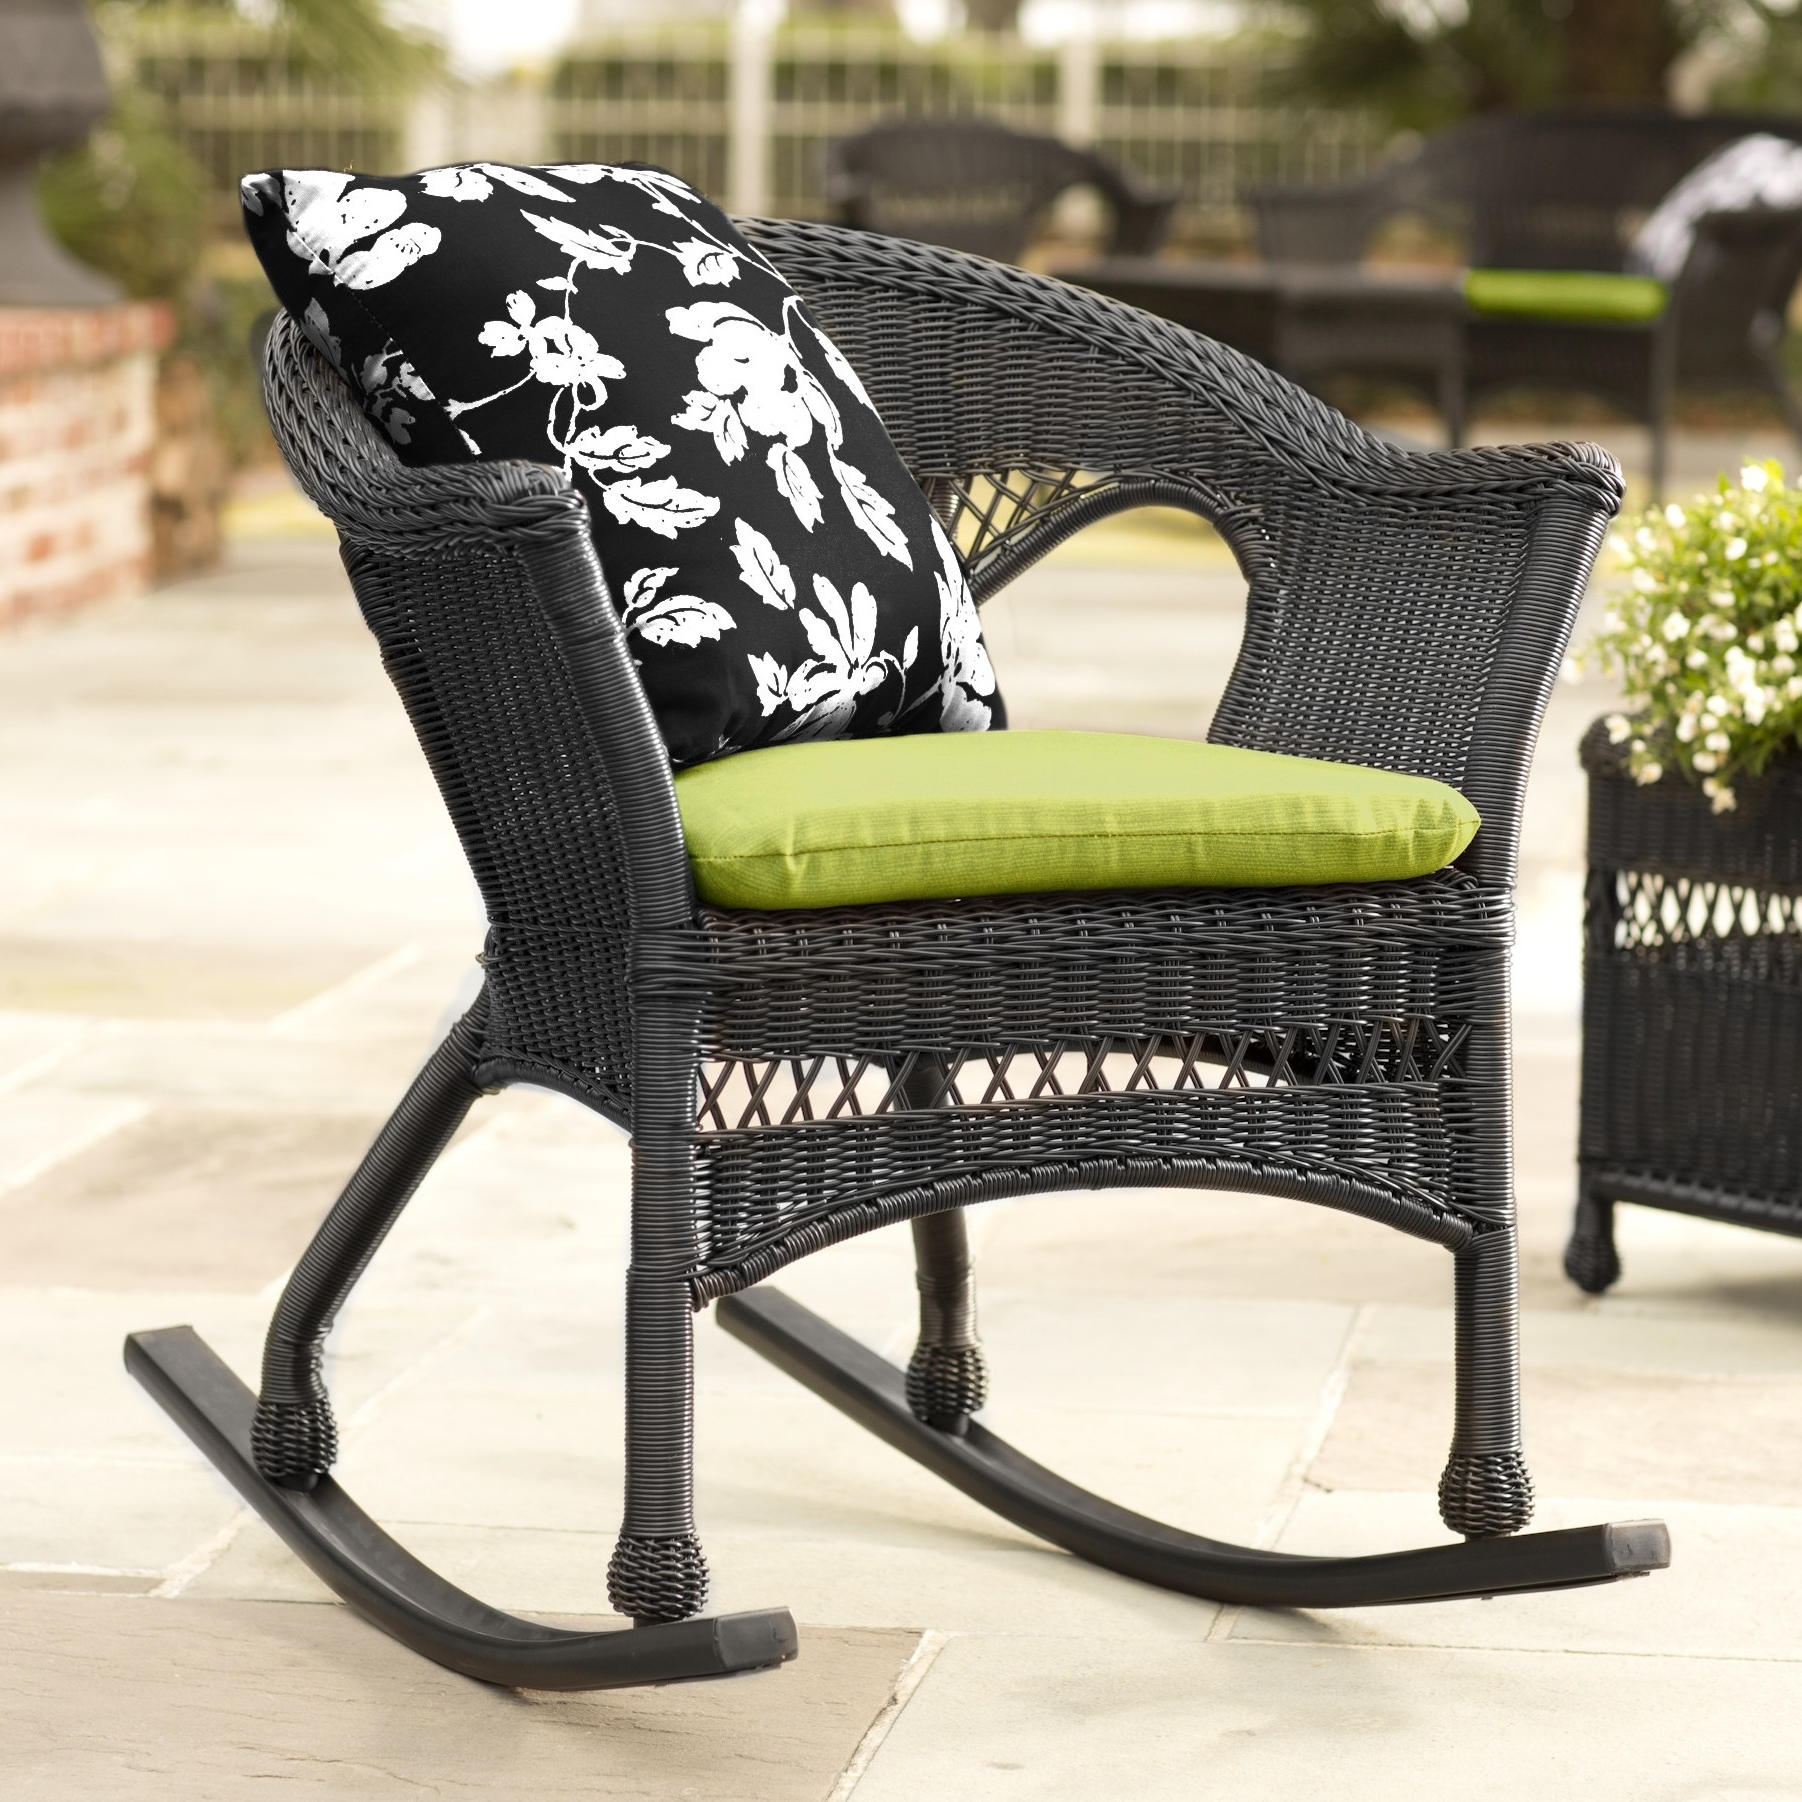 Patio Rocking Chairs And Gliders Pertaining To Popular Rocker Chair (View 12 of 15)